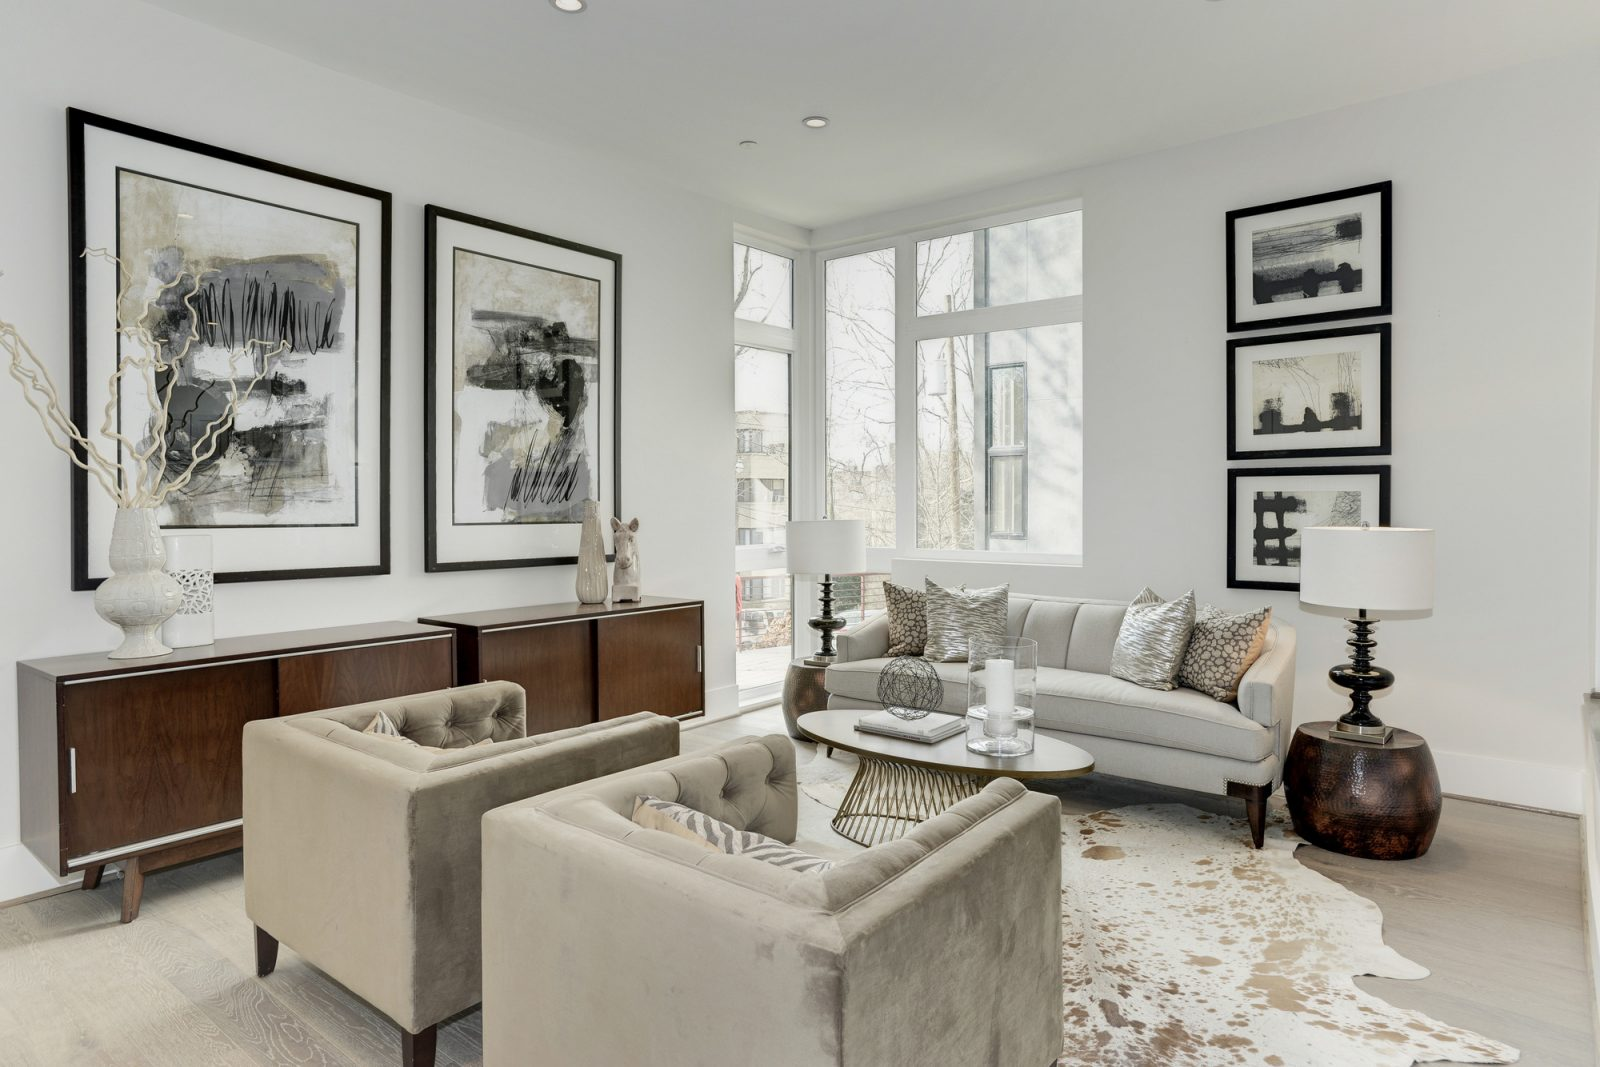 Living Room with Beige Furniture and Abstract Wall Art